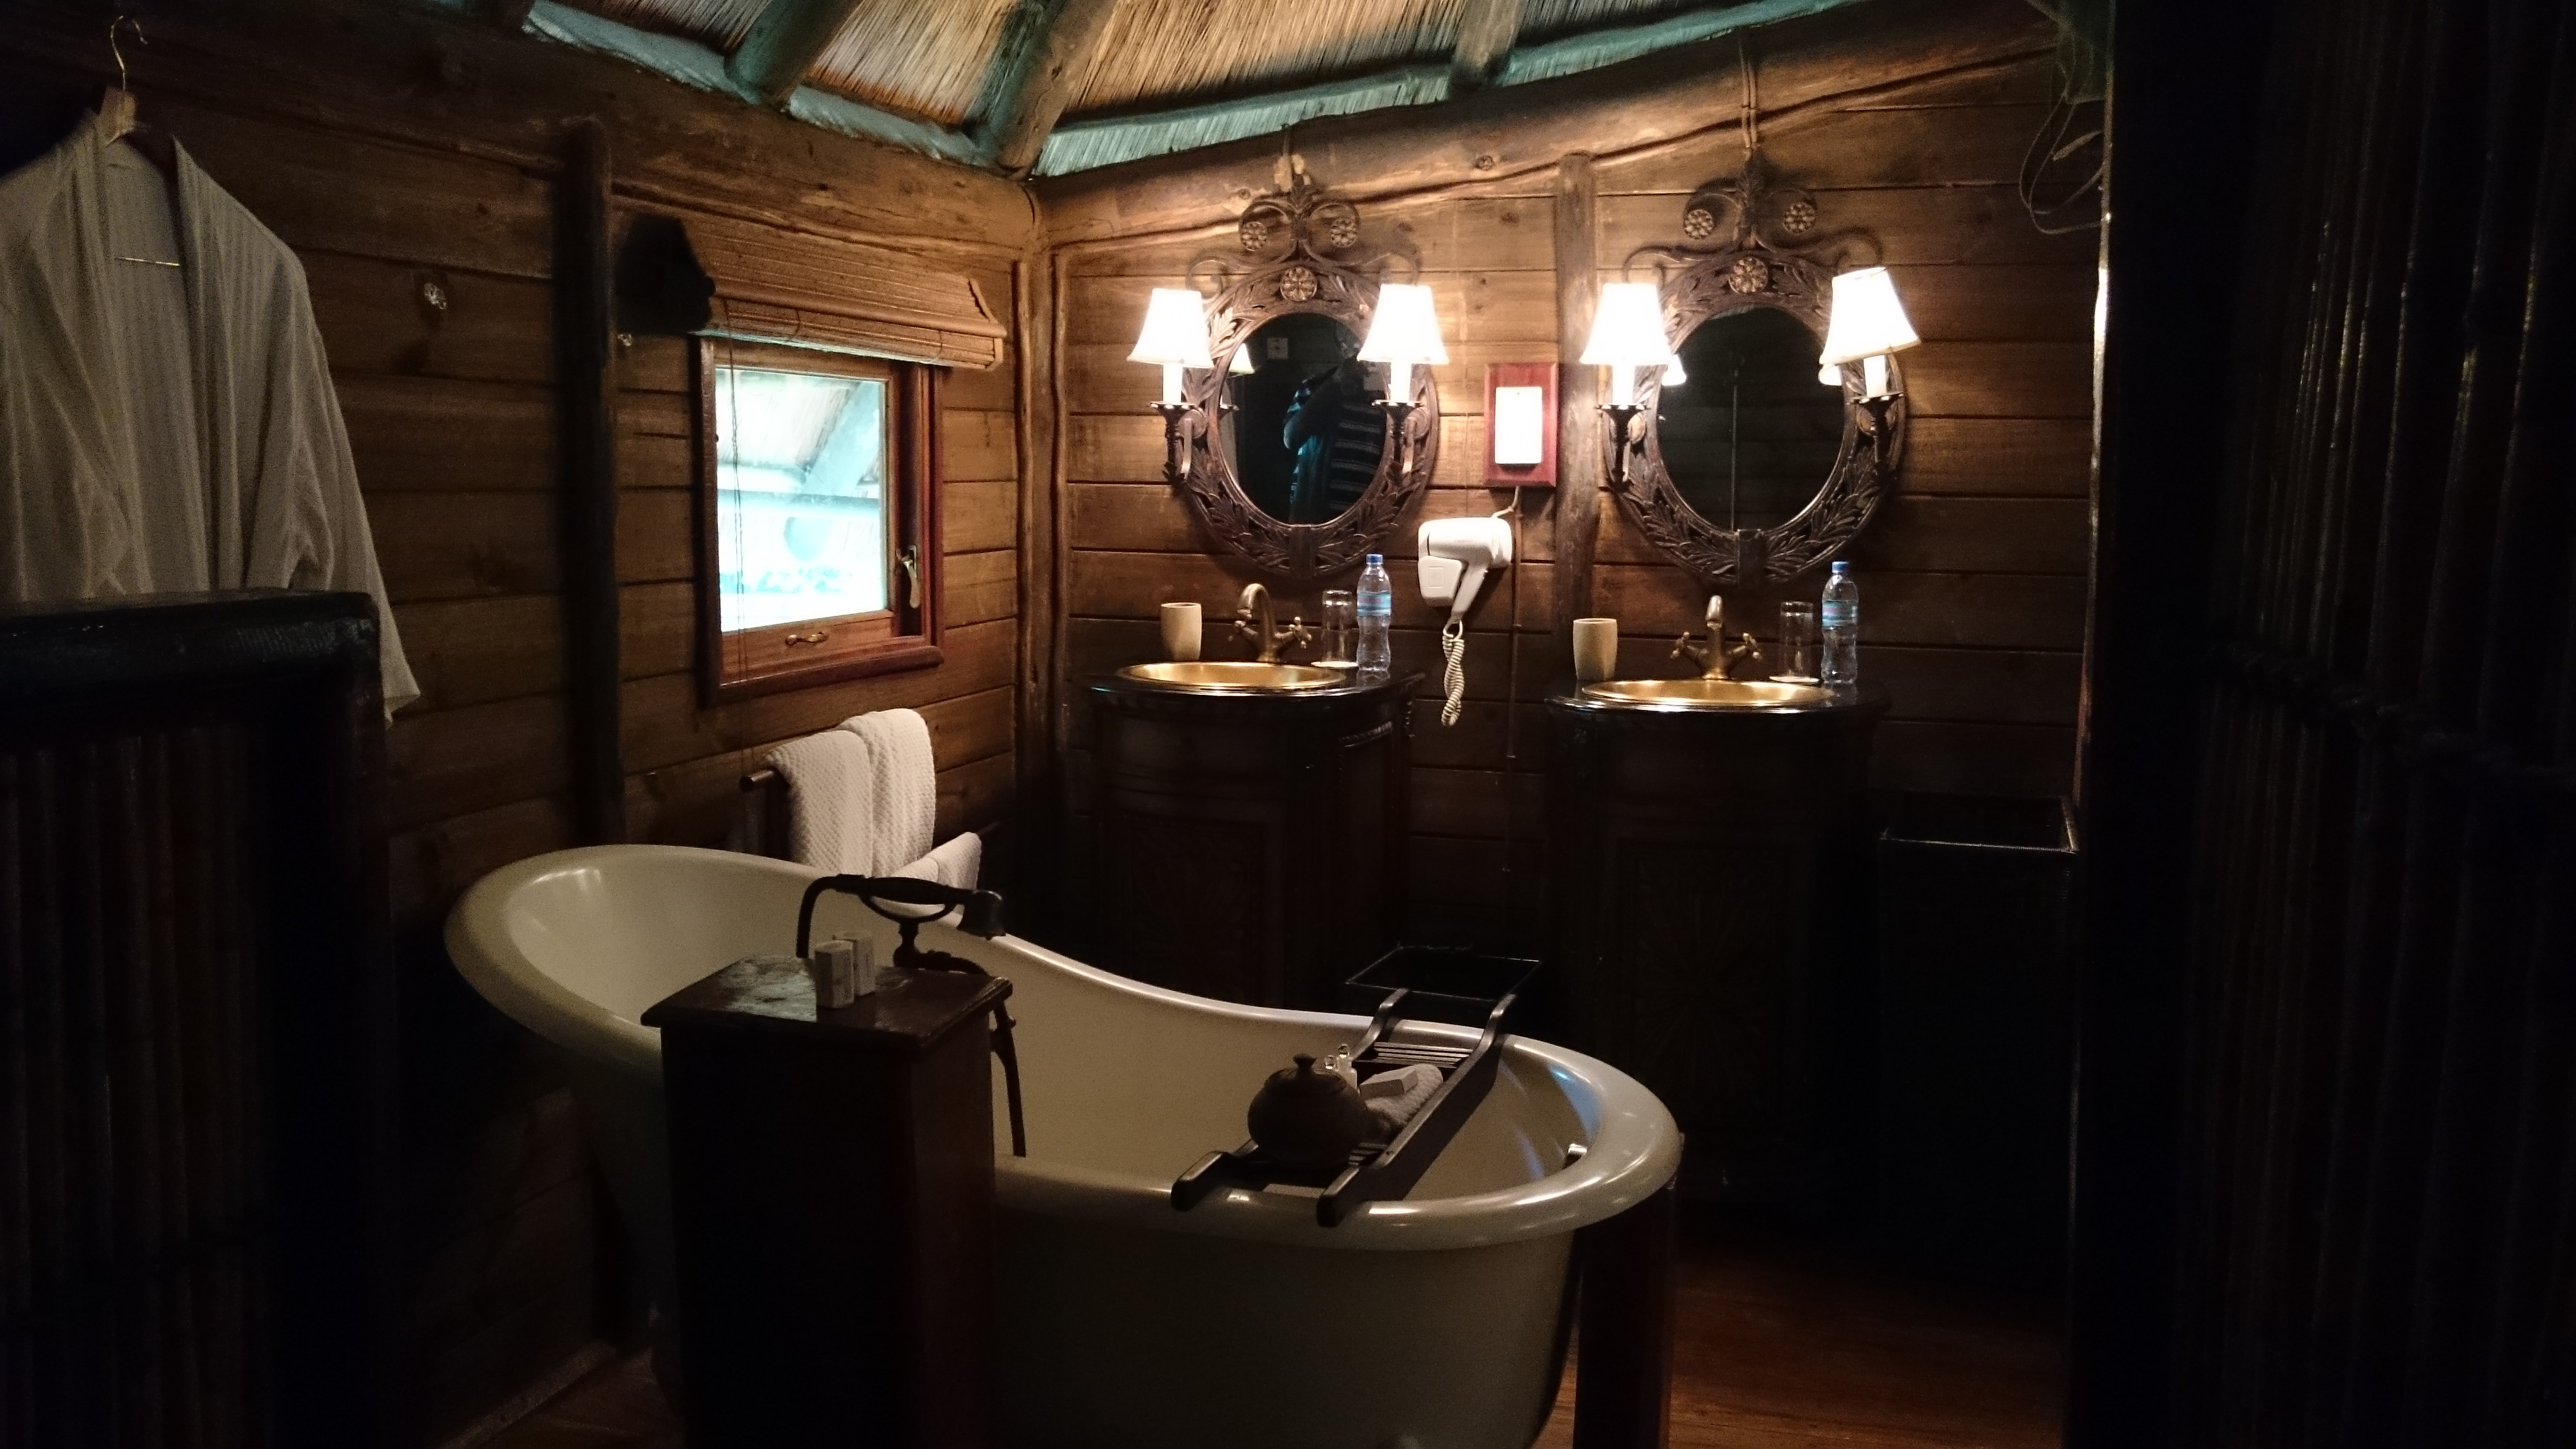 The bathroom at the Selous Serena Camp, Serenas second property in Selous Game Reserve